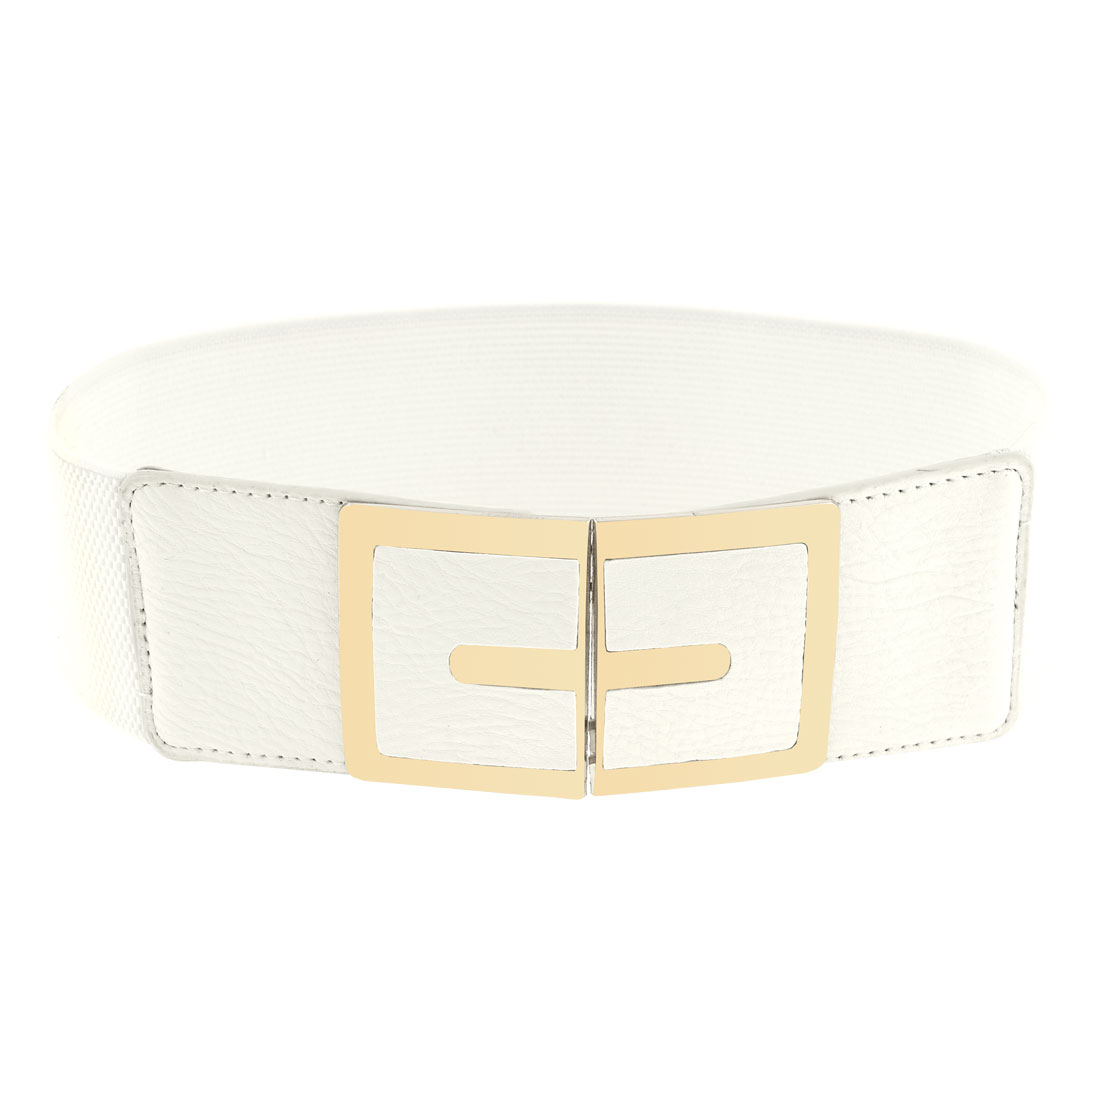 Lady Metal Interlock Buckle 6cm Wide Stretch Off White Waist Belt Band Waistband